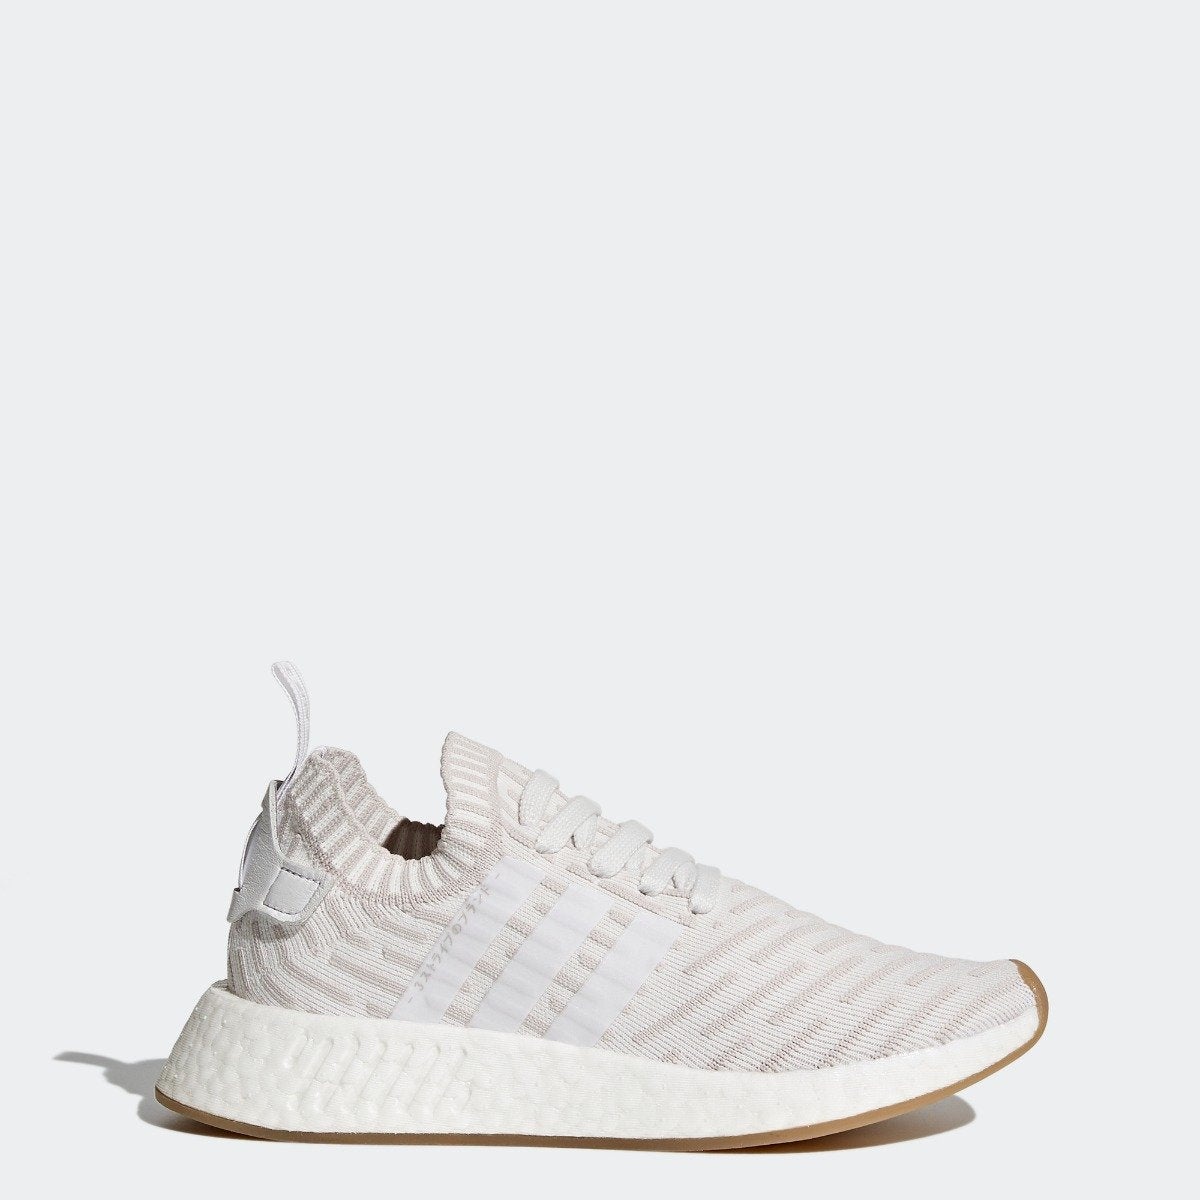 35a1064cd99f5 Women s adidas Originals NMD R2 Primeknit Shoes White with Shock Pink